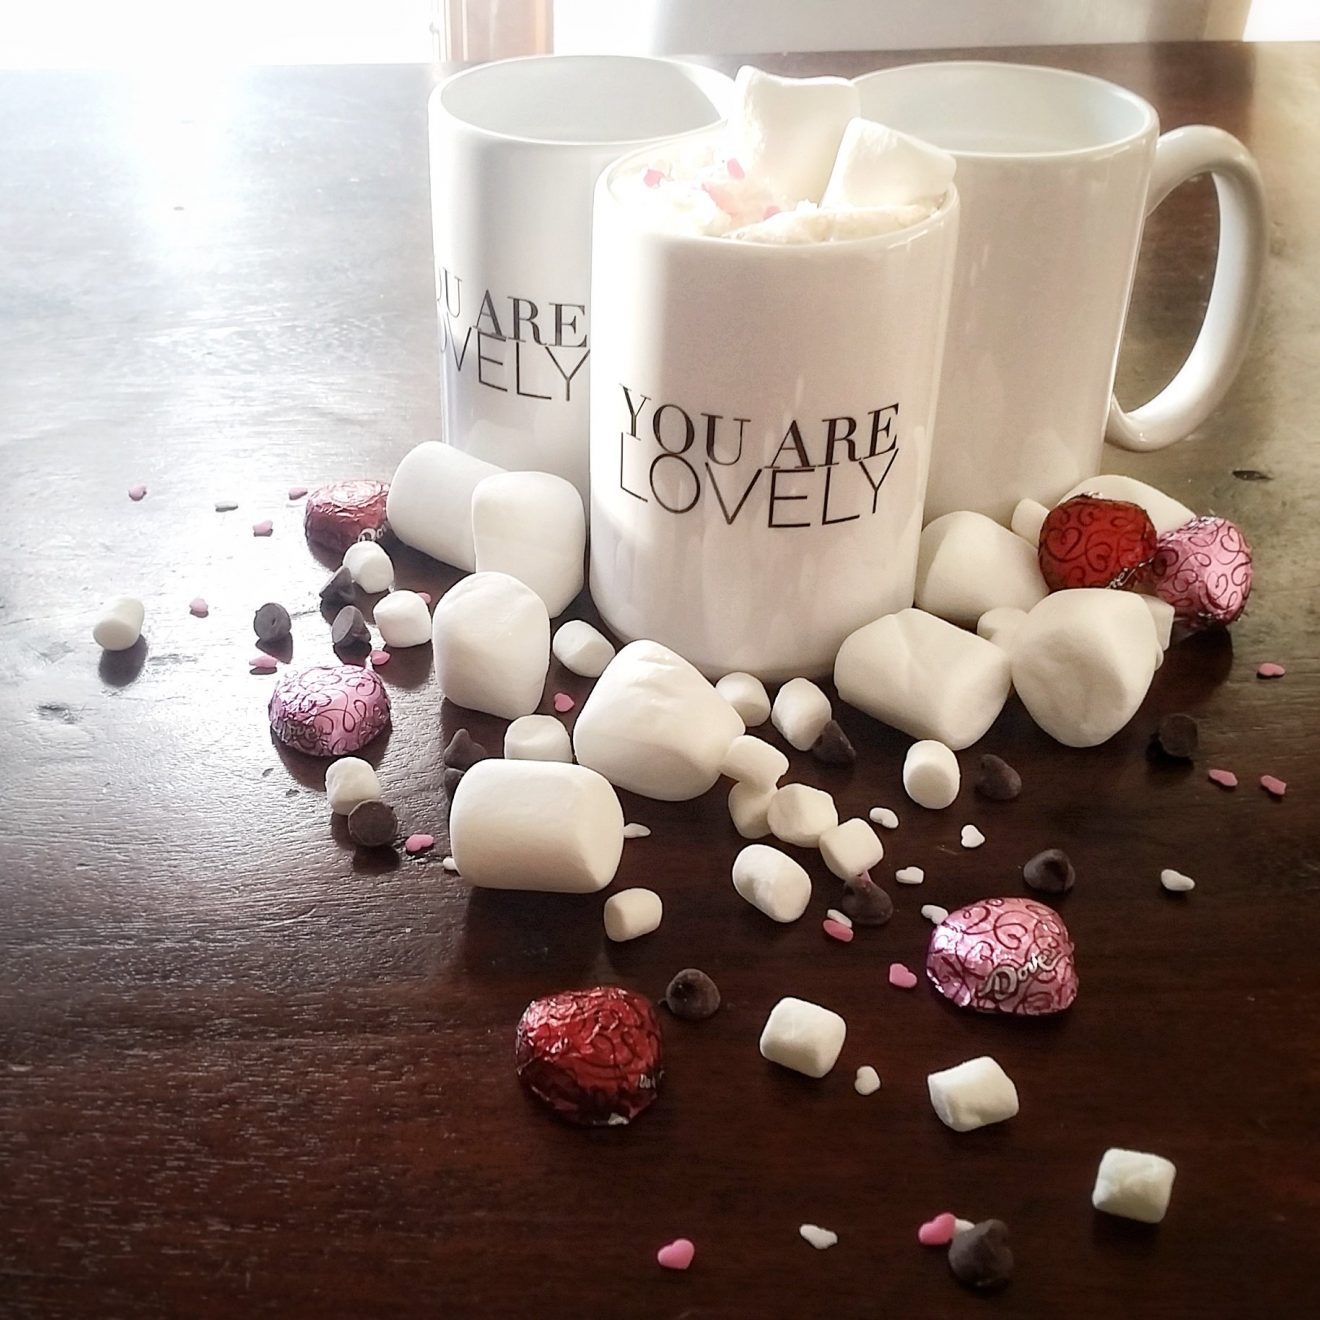 You Are Lovely Coffee Mugs from Thavin   Marcob Fashion Self Love giveaway hot chocolate set